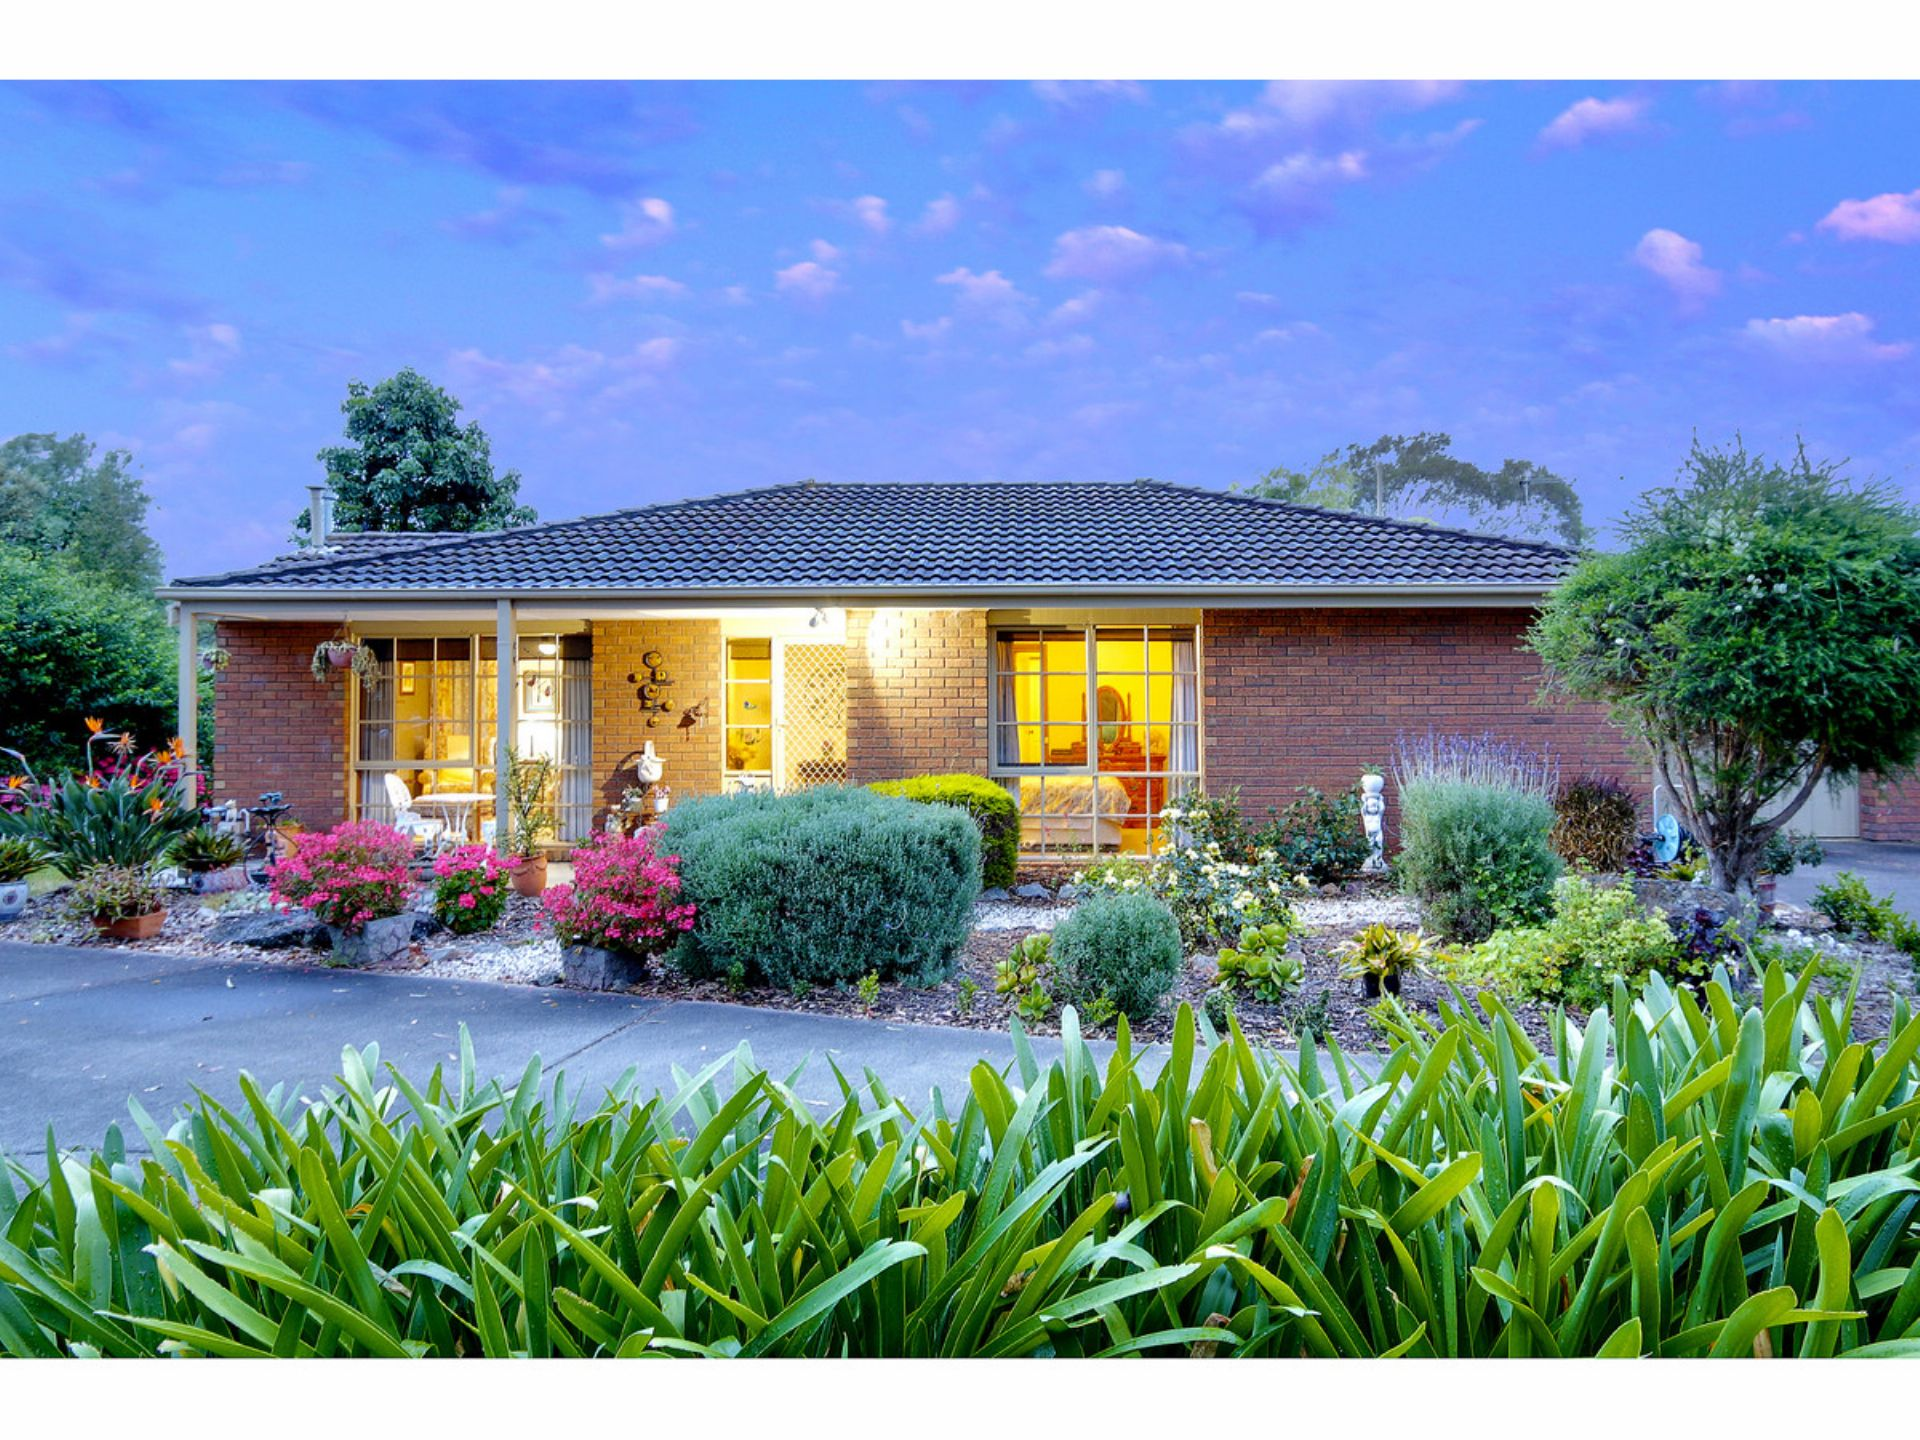 25/99 Bentons Road, MORNINGTON, VIC, 3931 - Image